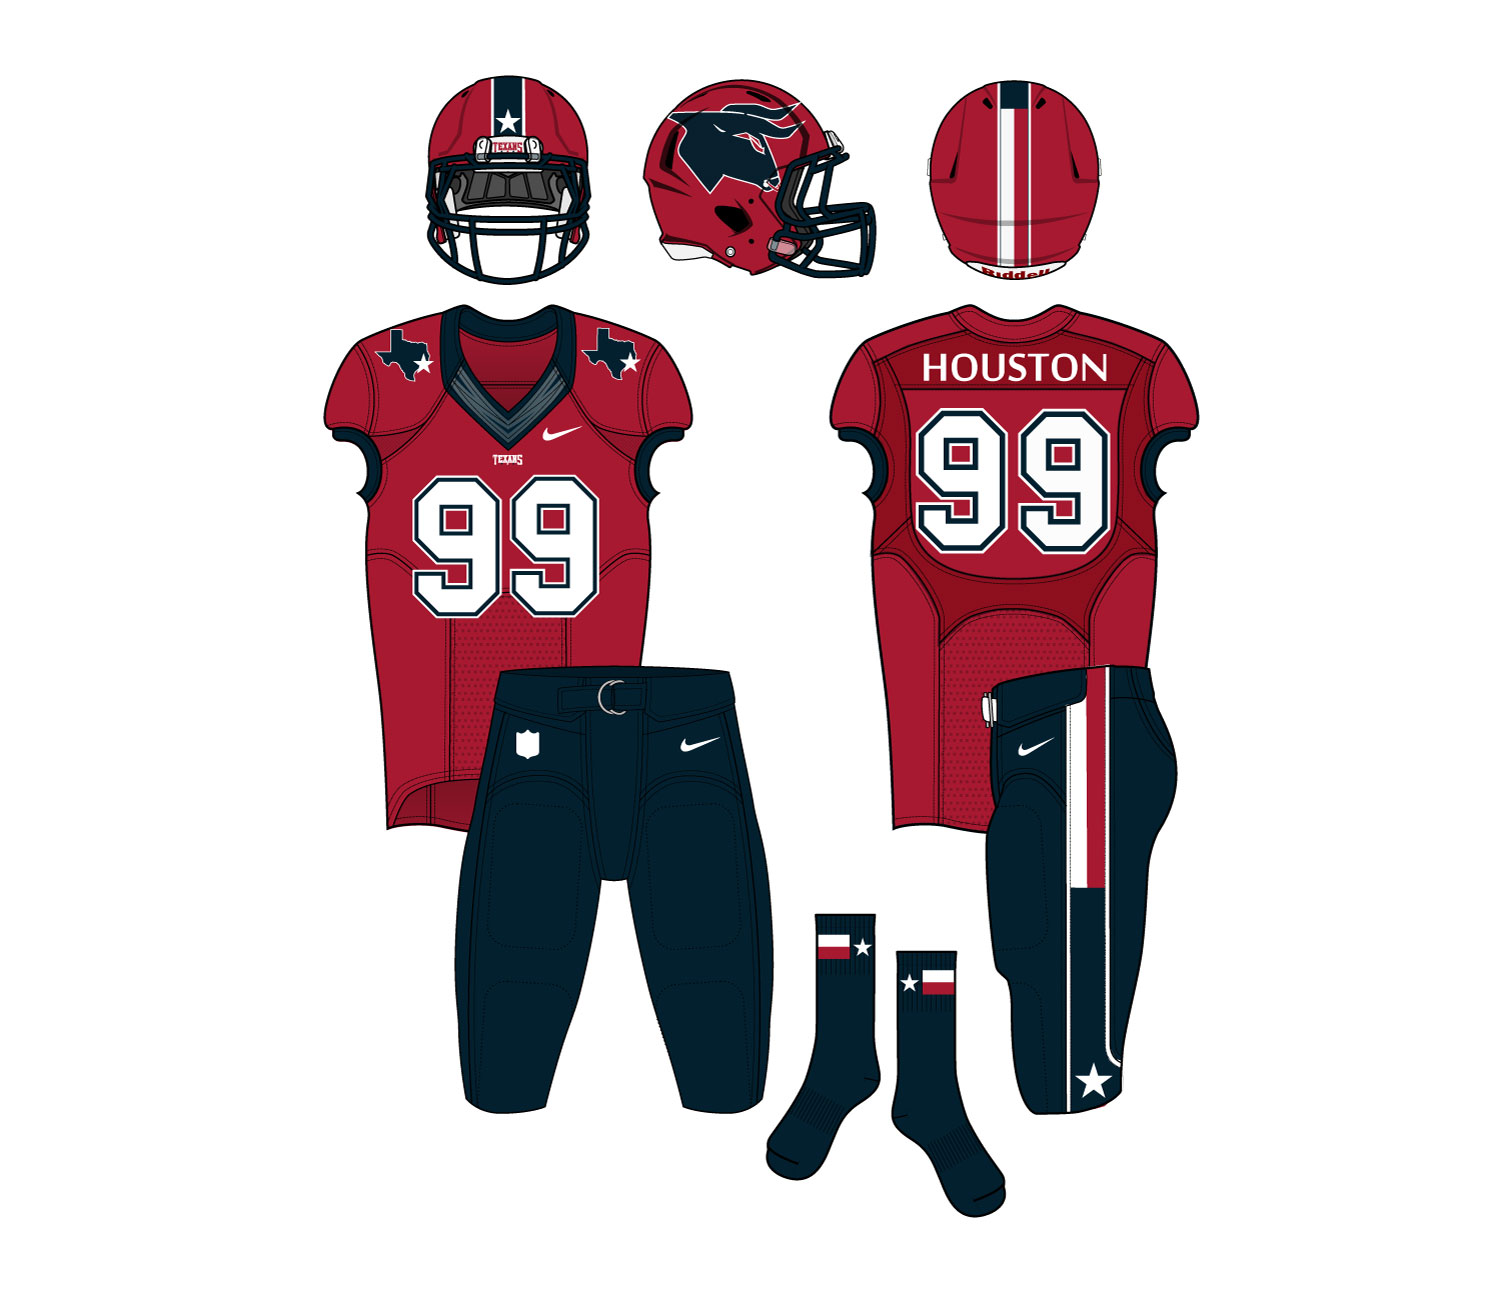 promo code 3acde 27a22 Time For The Houston Texans To Rebrand Their Look – CBS Houston